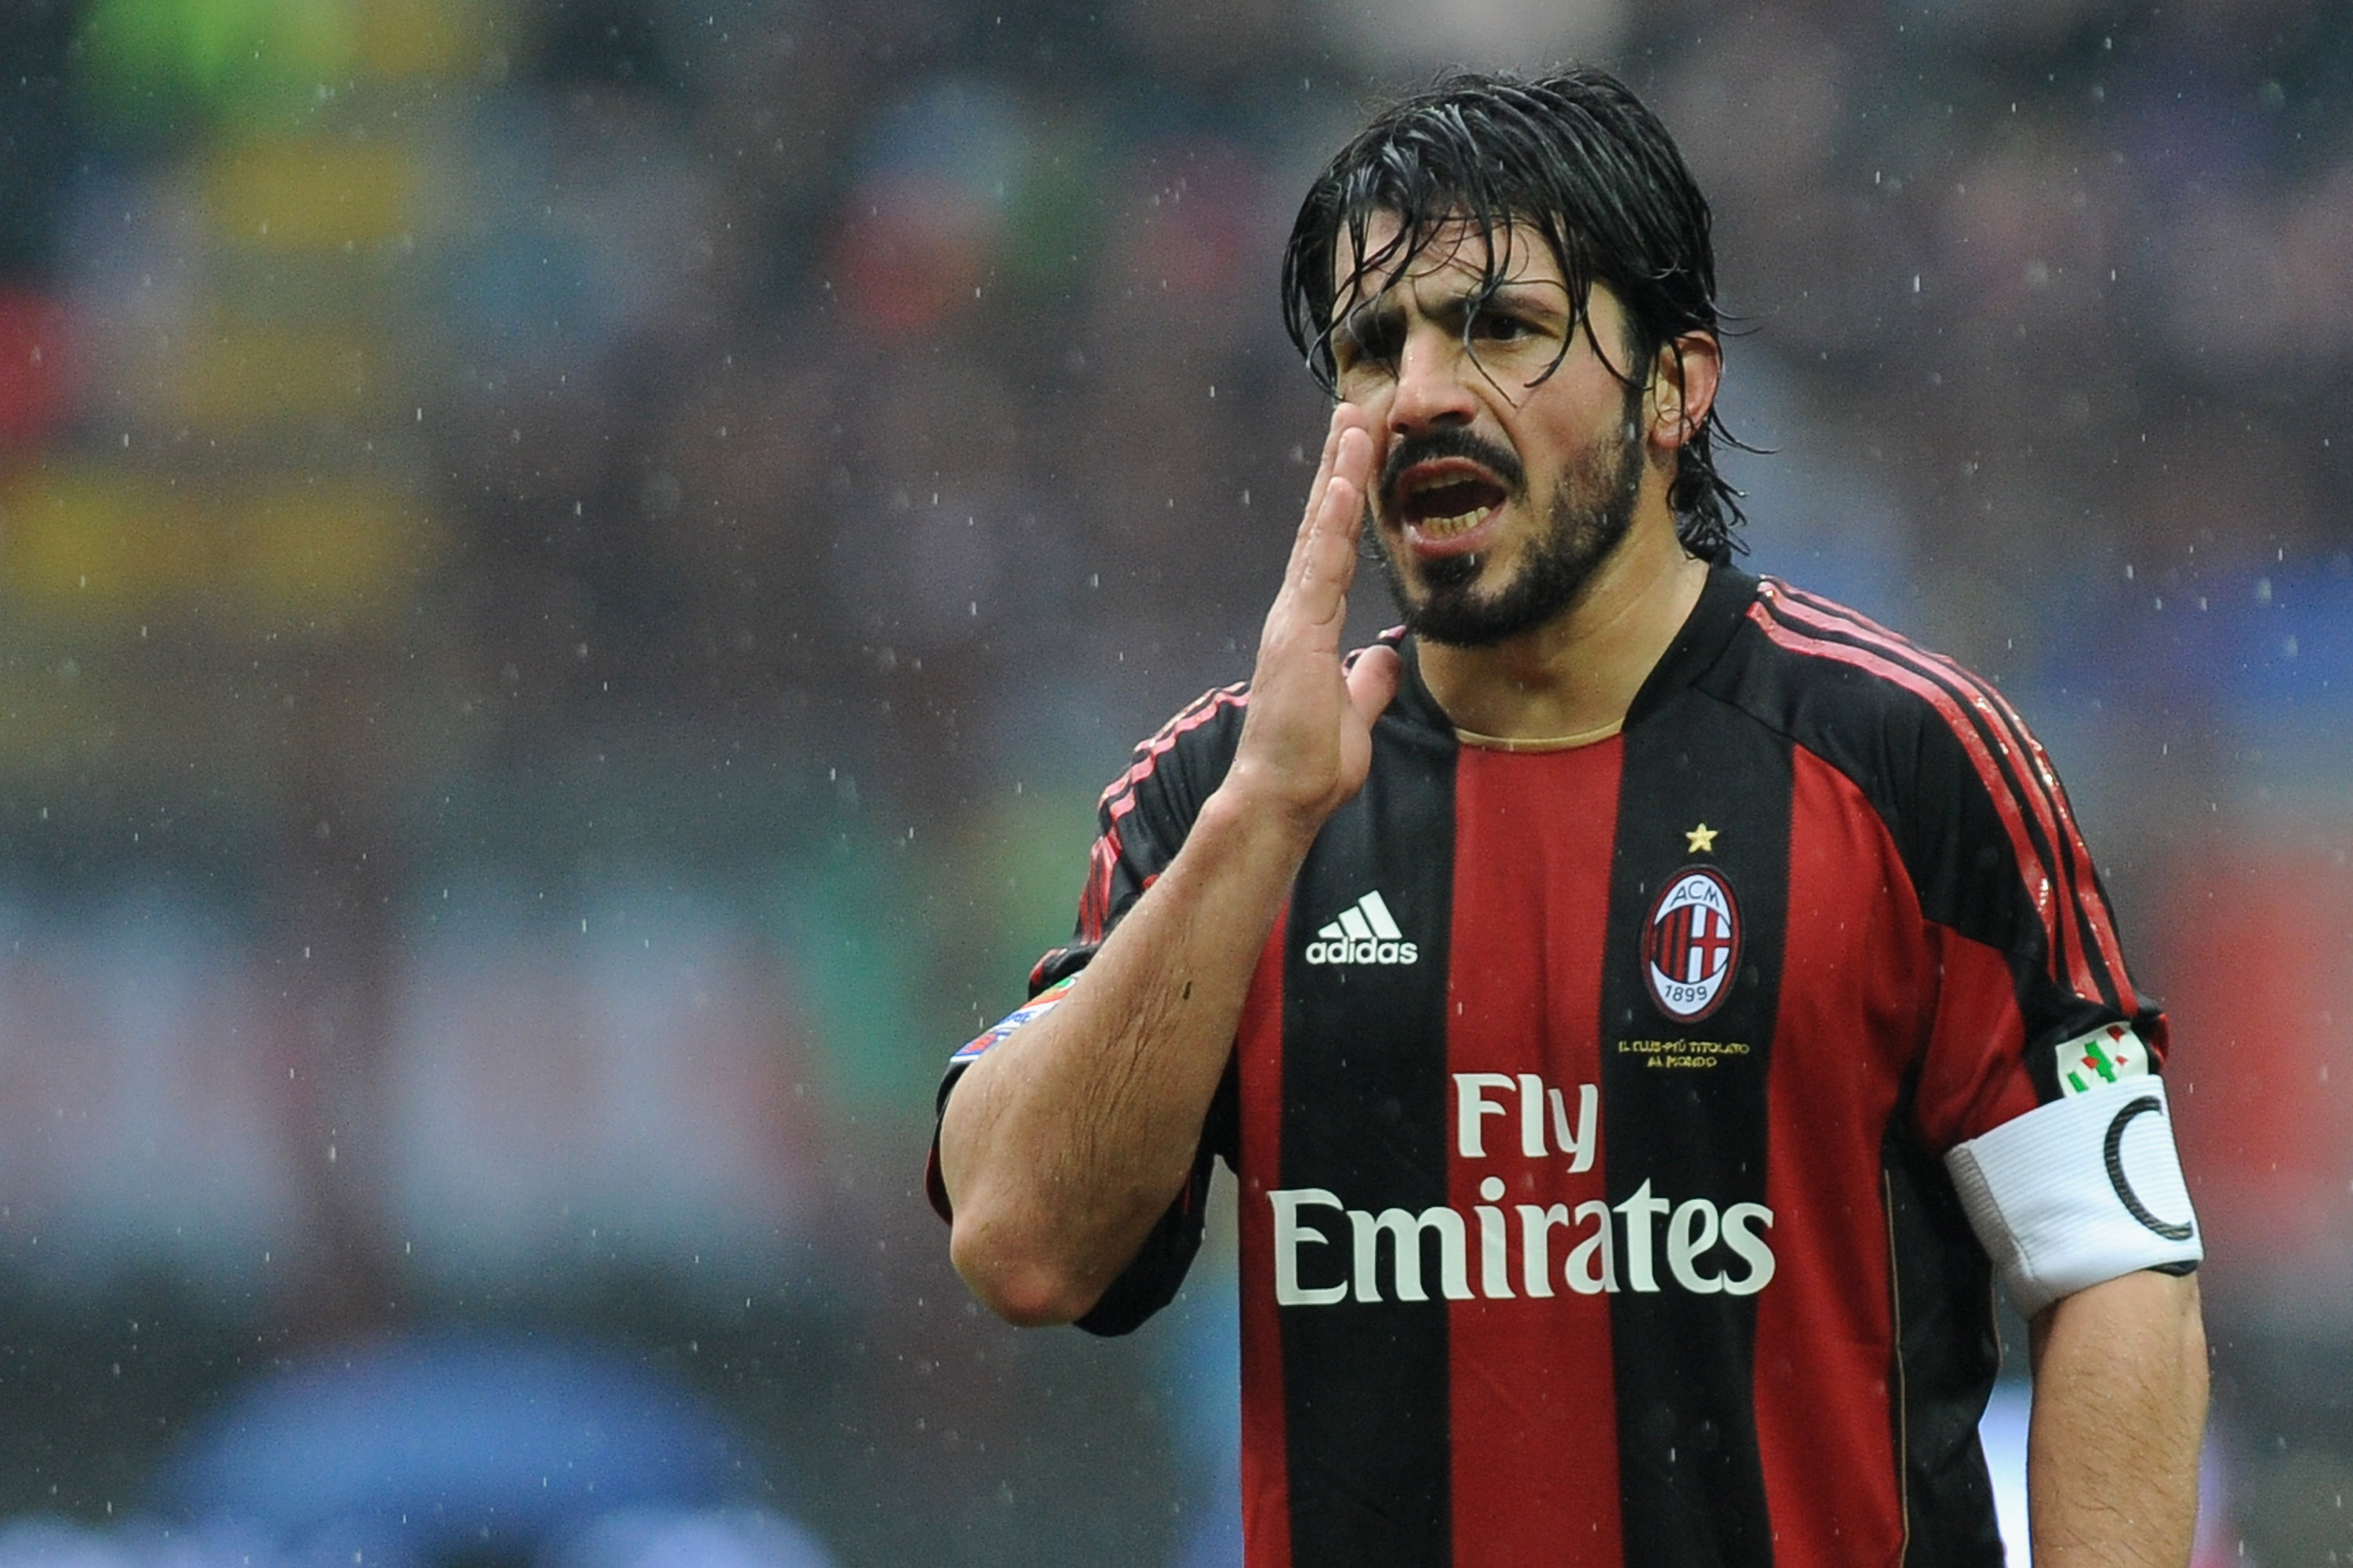 gattuso - photo #25